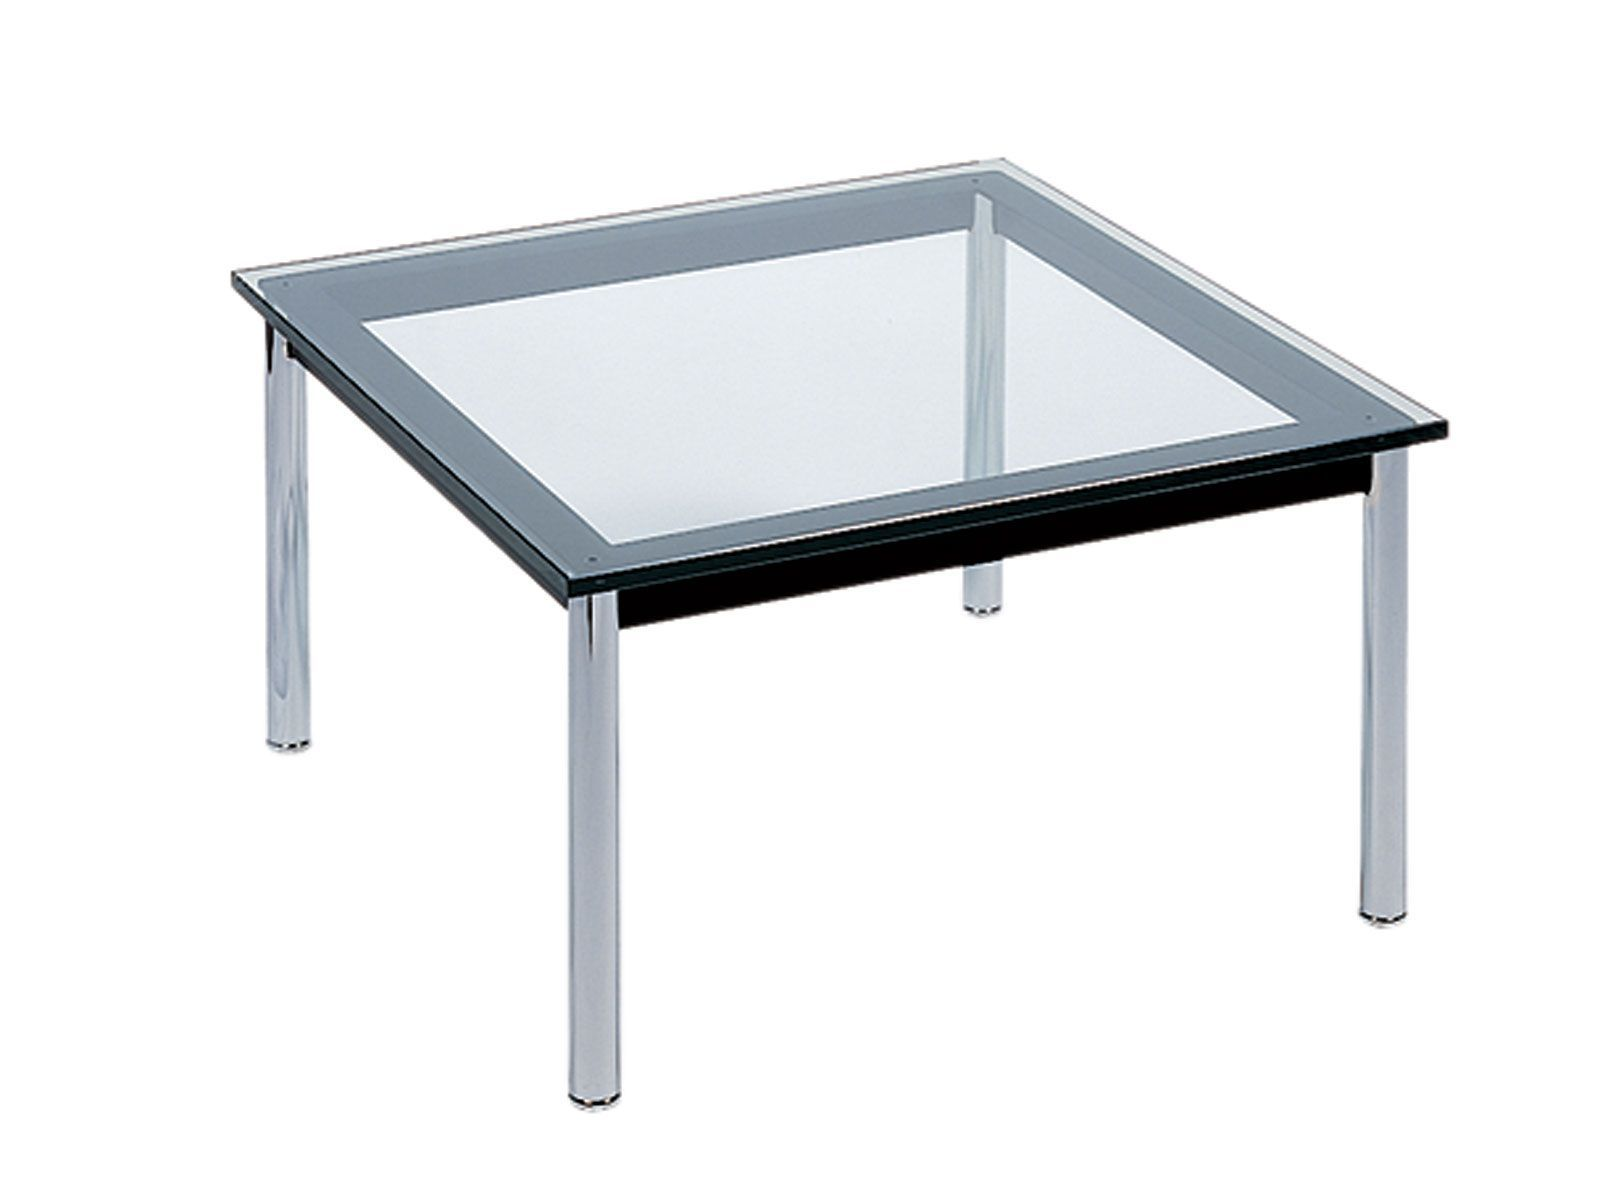 Le Corbusier Square Glass Top Coffee Table Glass Top Coffee Table Coffee Table Le Corbusier Coffee Table